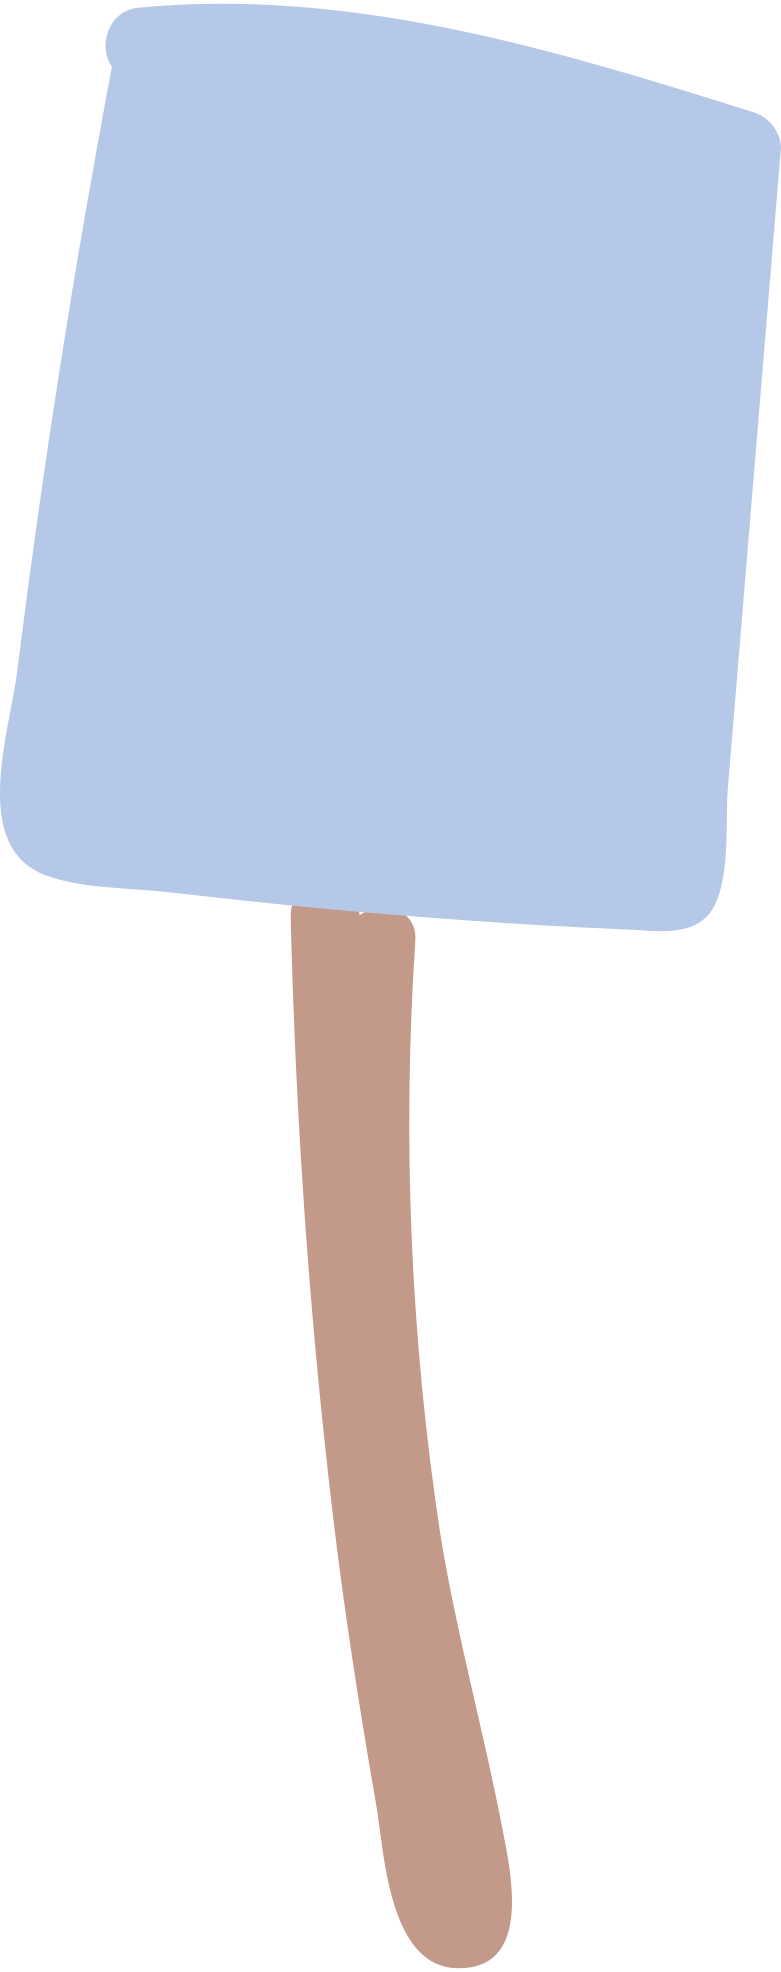 placard Clipart illustration in PNG, SVG